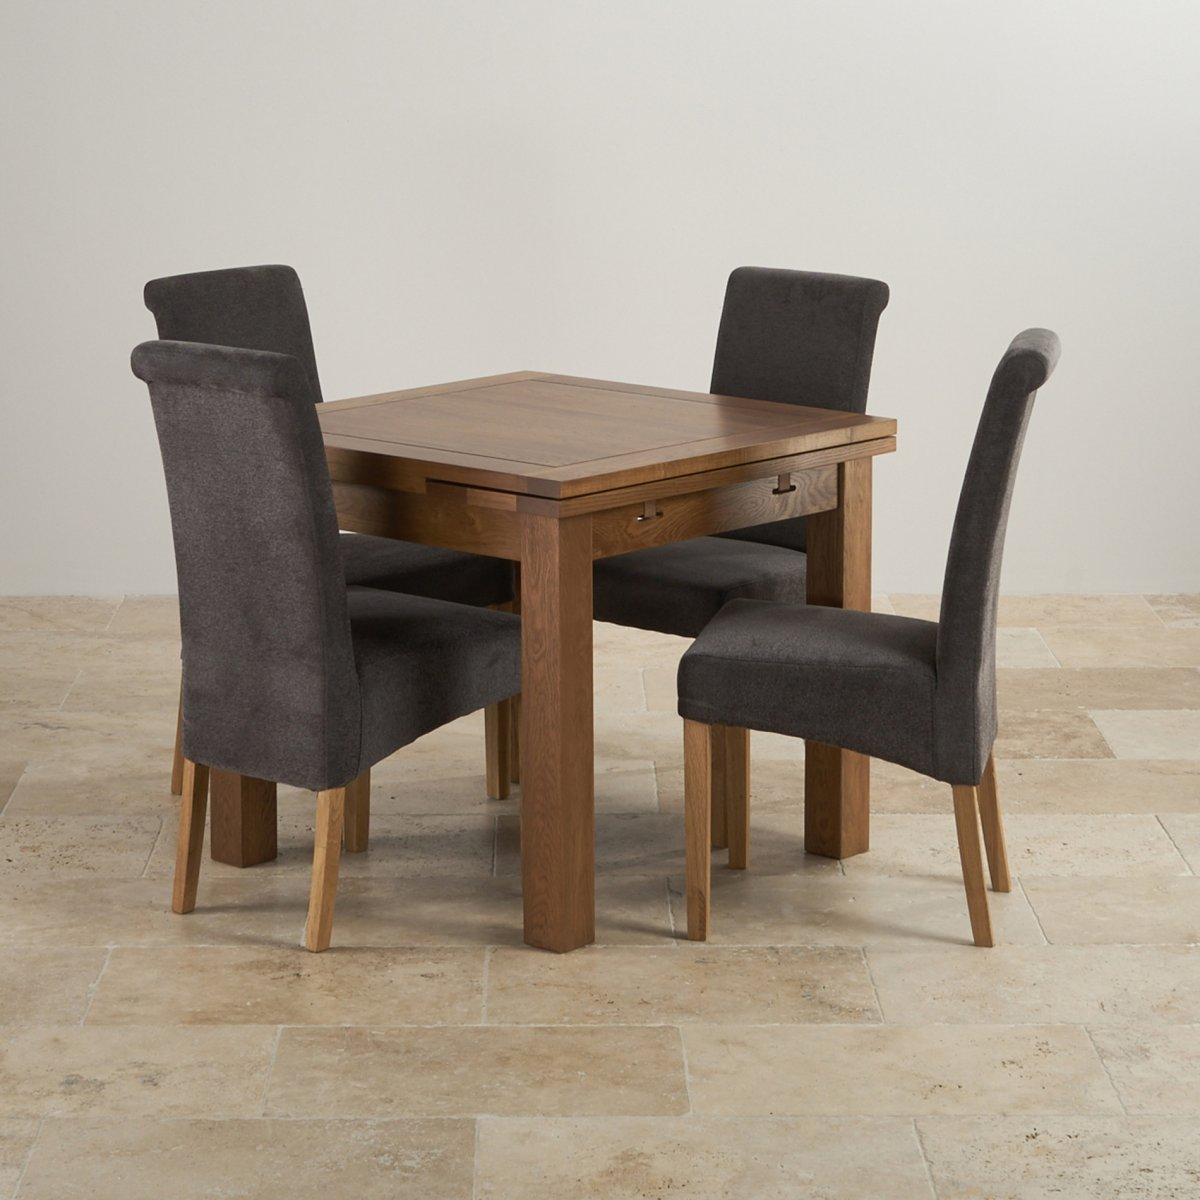 Rustic Oak Dining Set: 3ft Extending Table + 4 Scroll Back